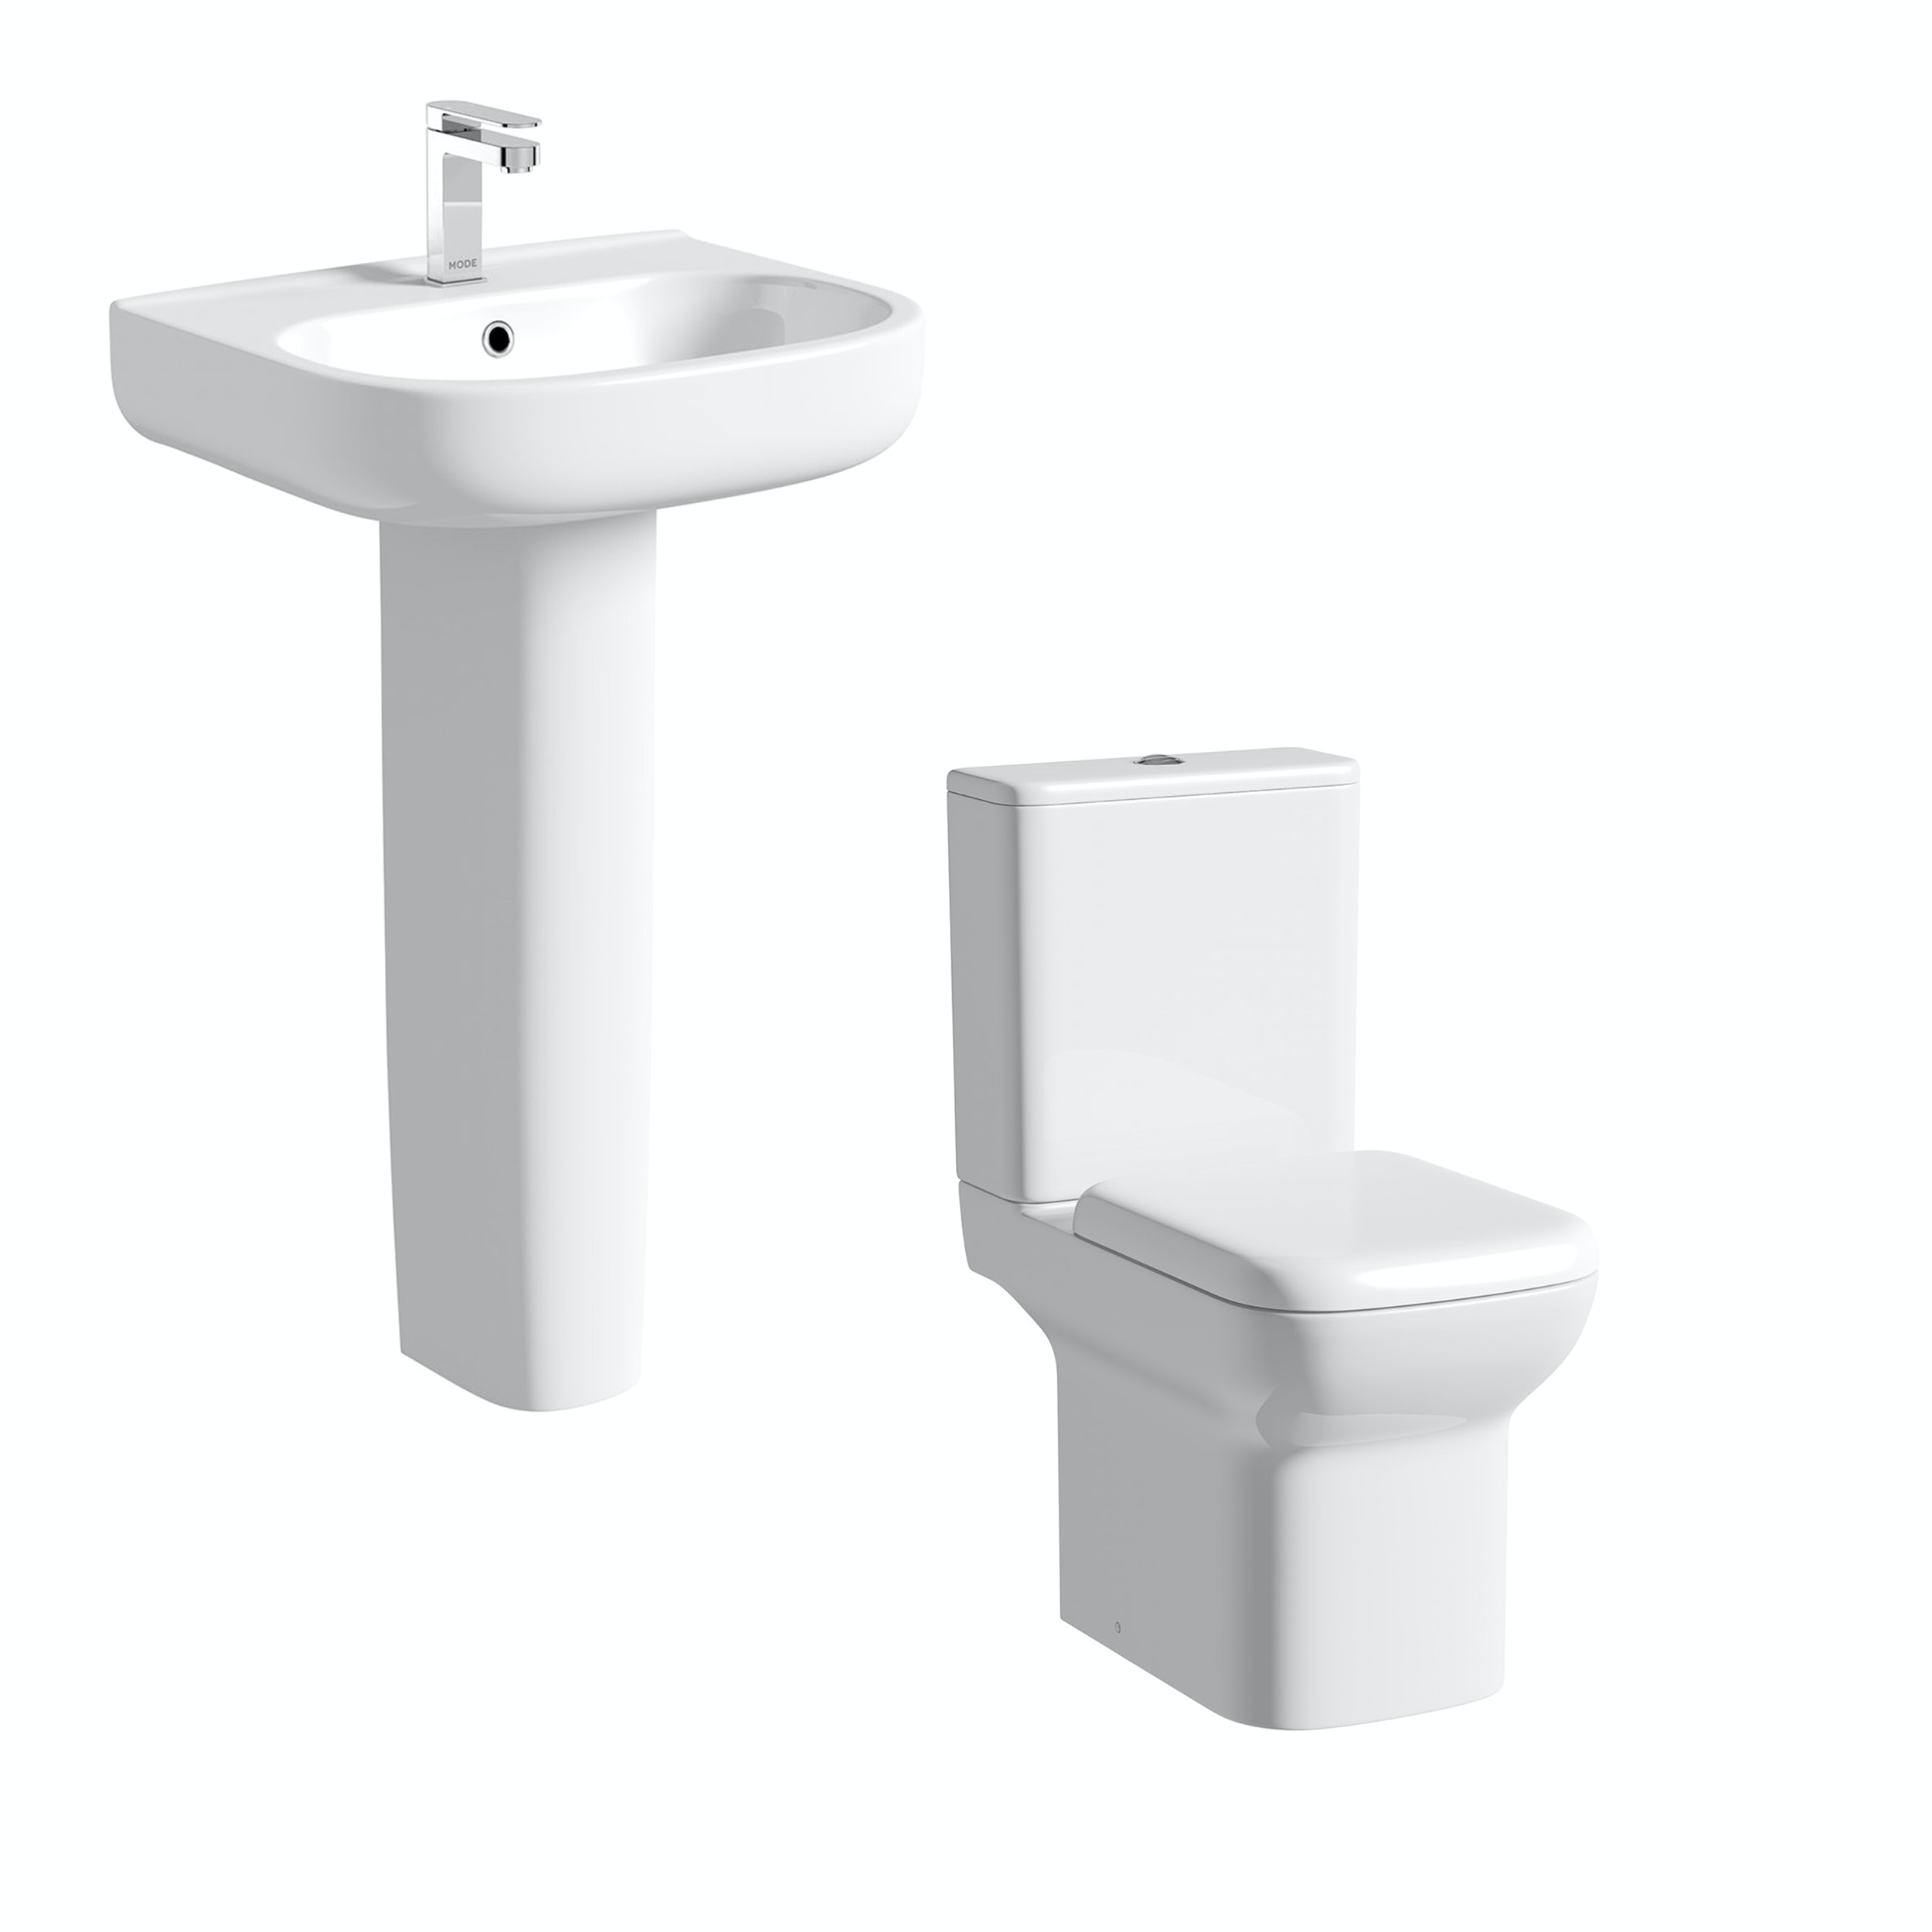 Orchard Lune cloakroom suite with full pedestal basin 550mm